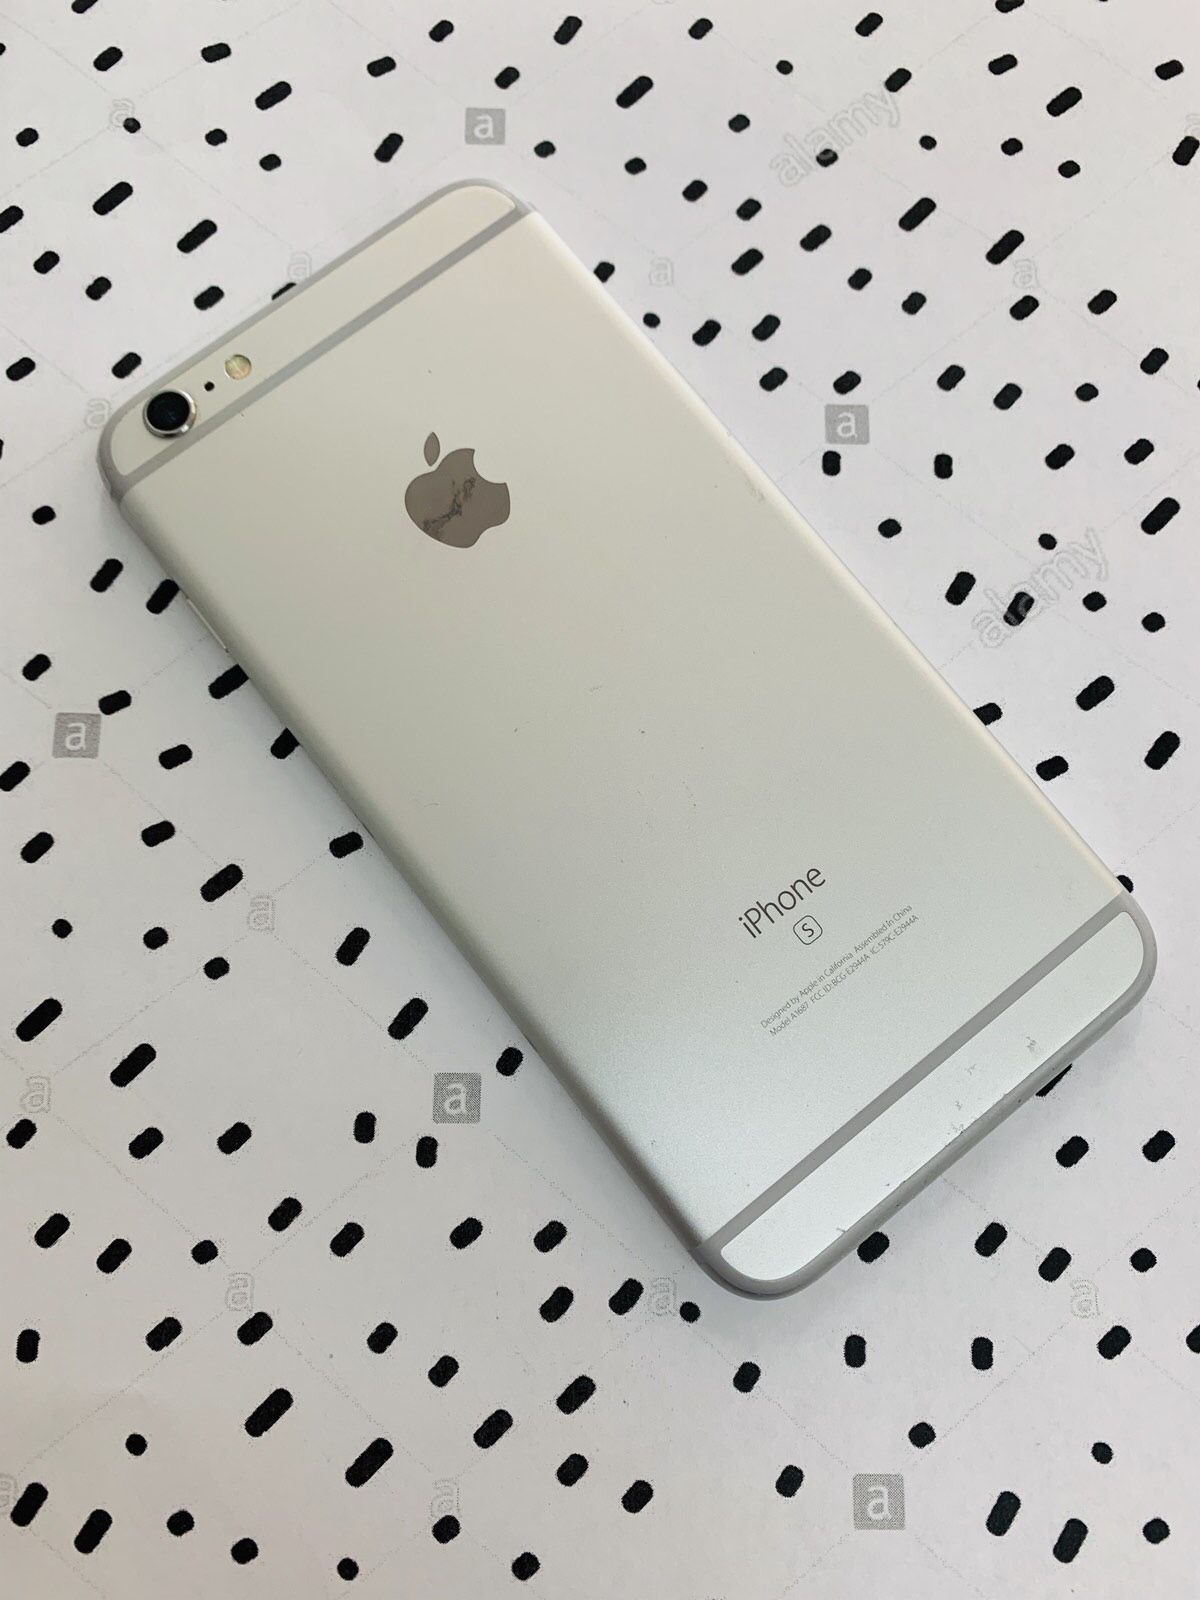 iPhone 6s Plus (64 GB) Excellent Condition With Warranty